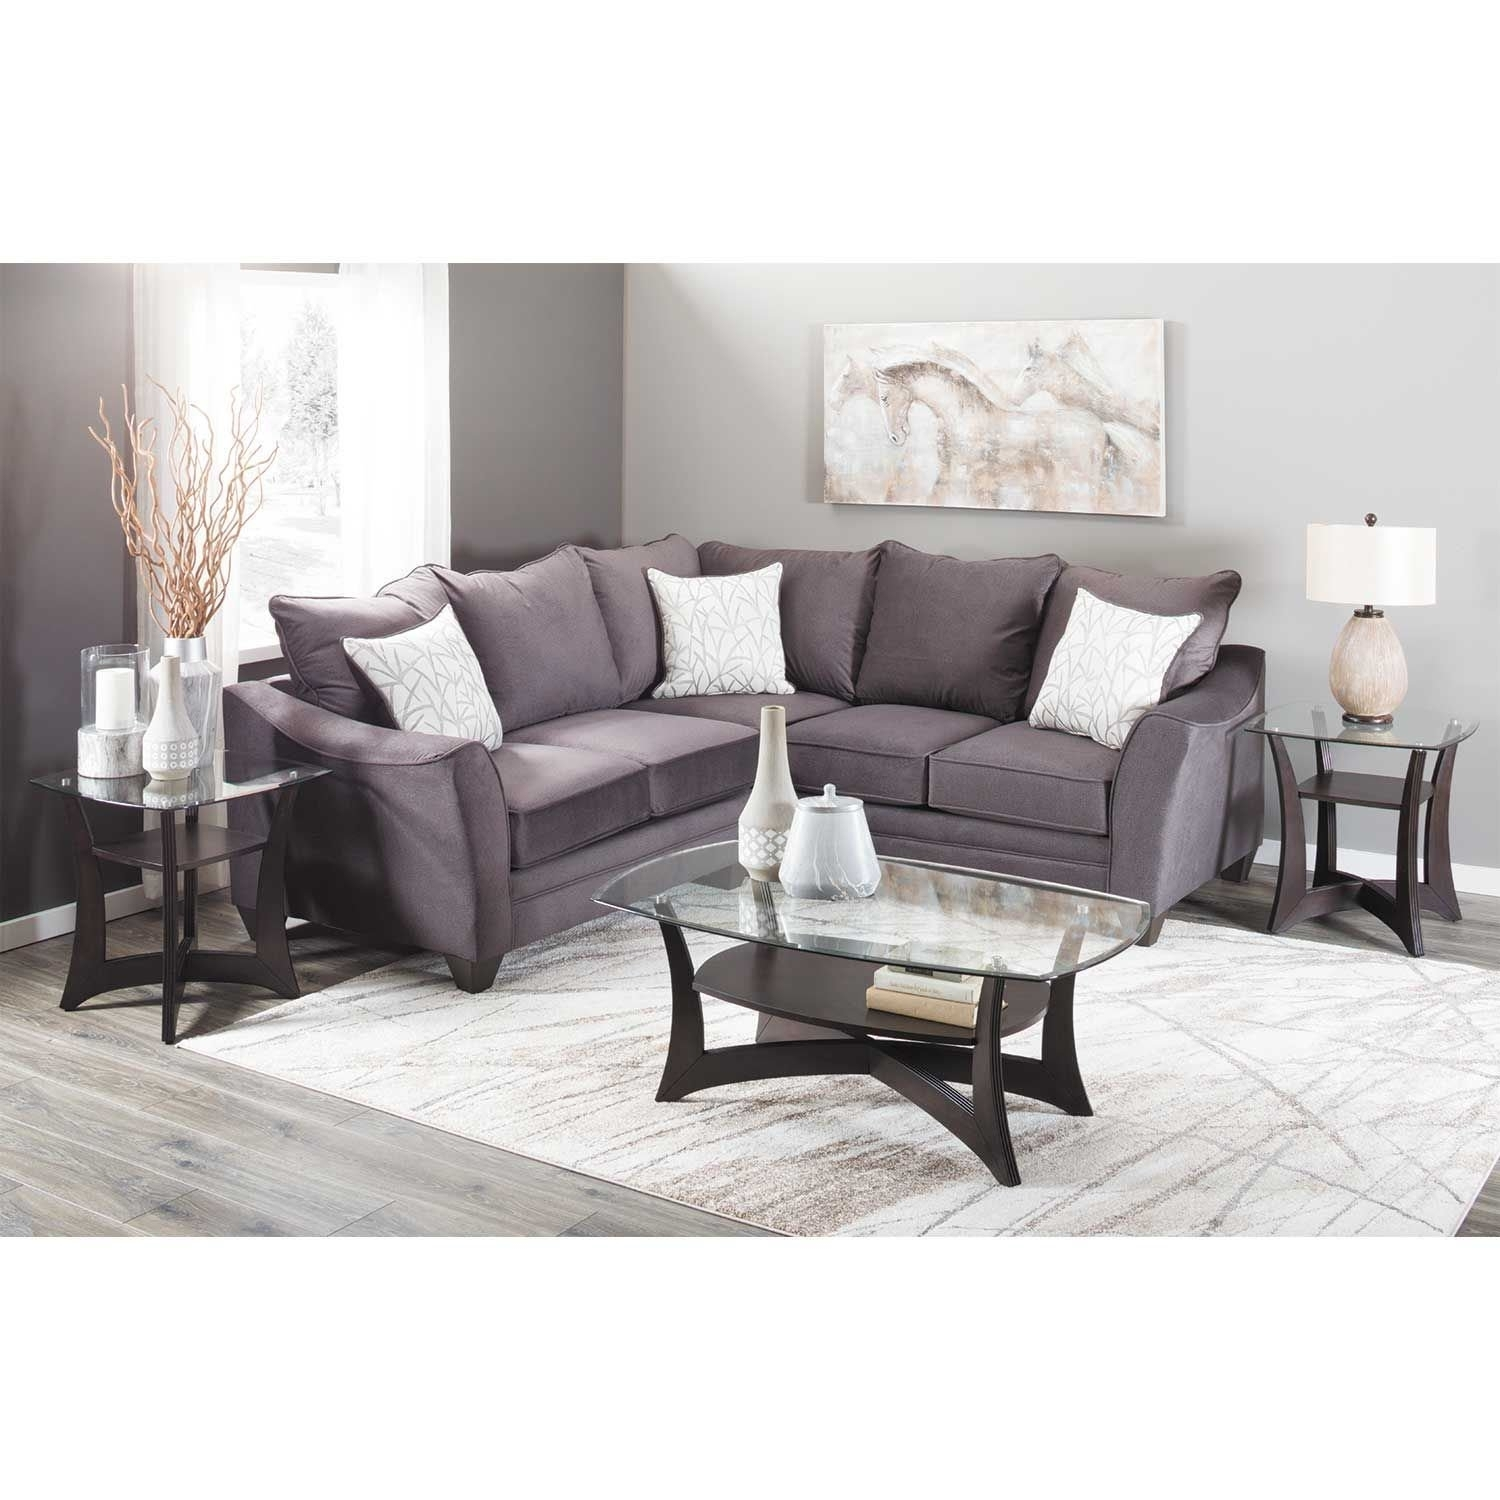 Flannel Seal 2 Piece Sectional With Raf Sofa | 3810/3816 | American Within Cosmos Grey 2 Piece Sectionals With Raf Chaise (View 20 of 25)